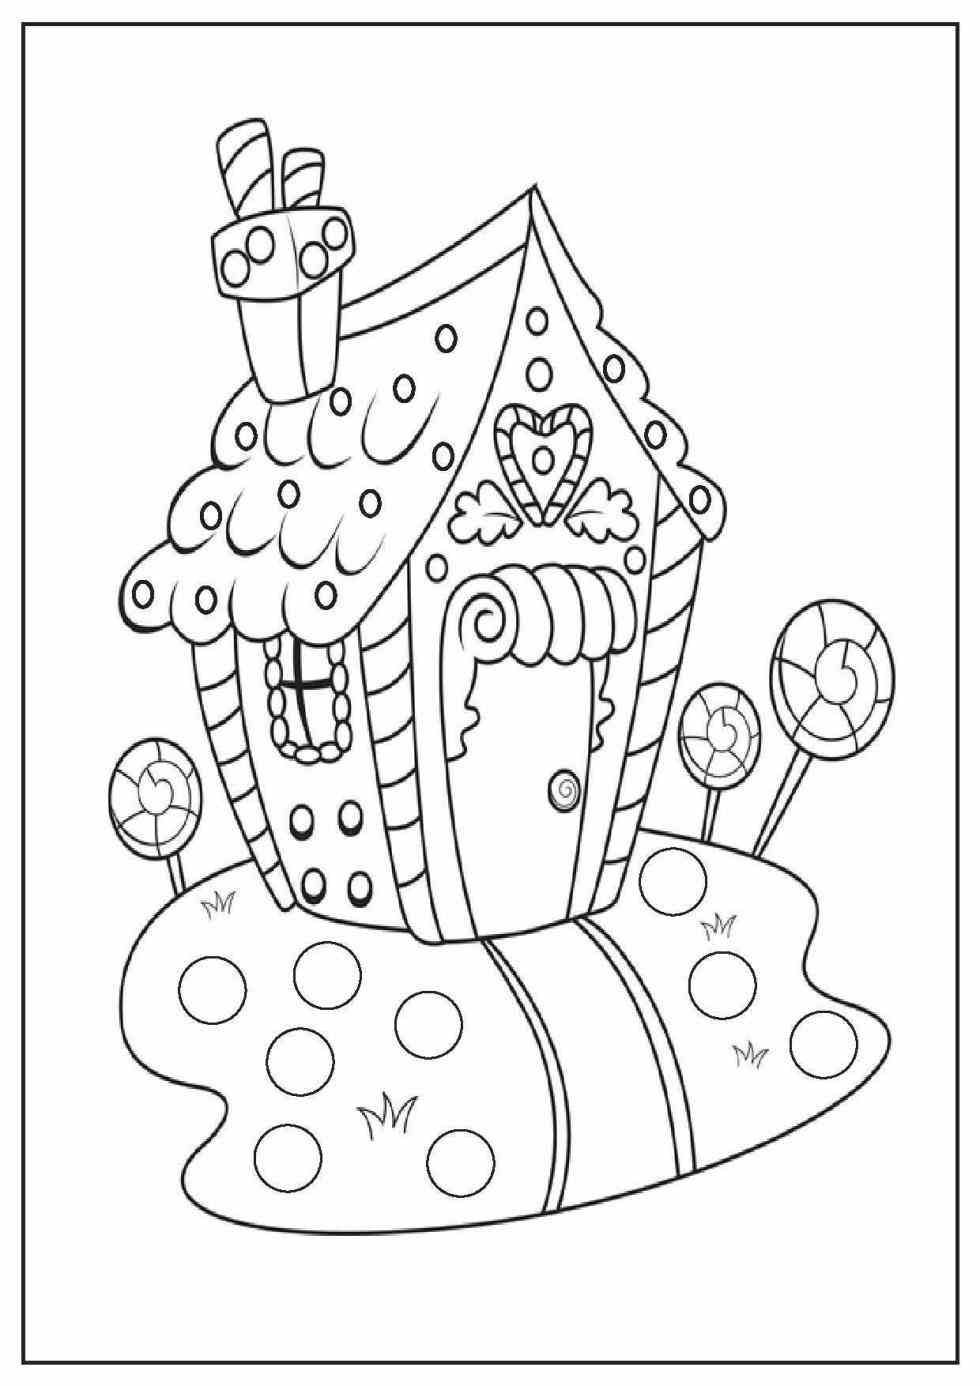 Sheets christmas coloring pages getcoloringpagescom for adults dr